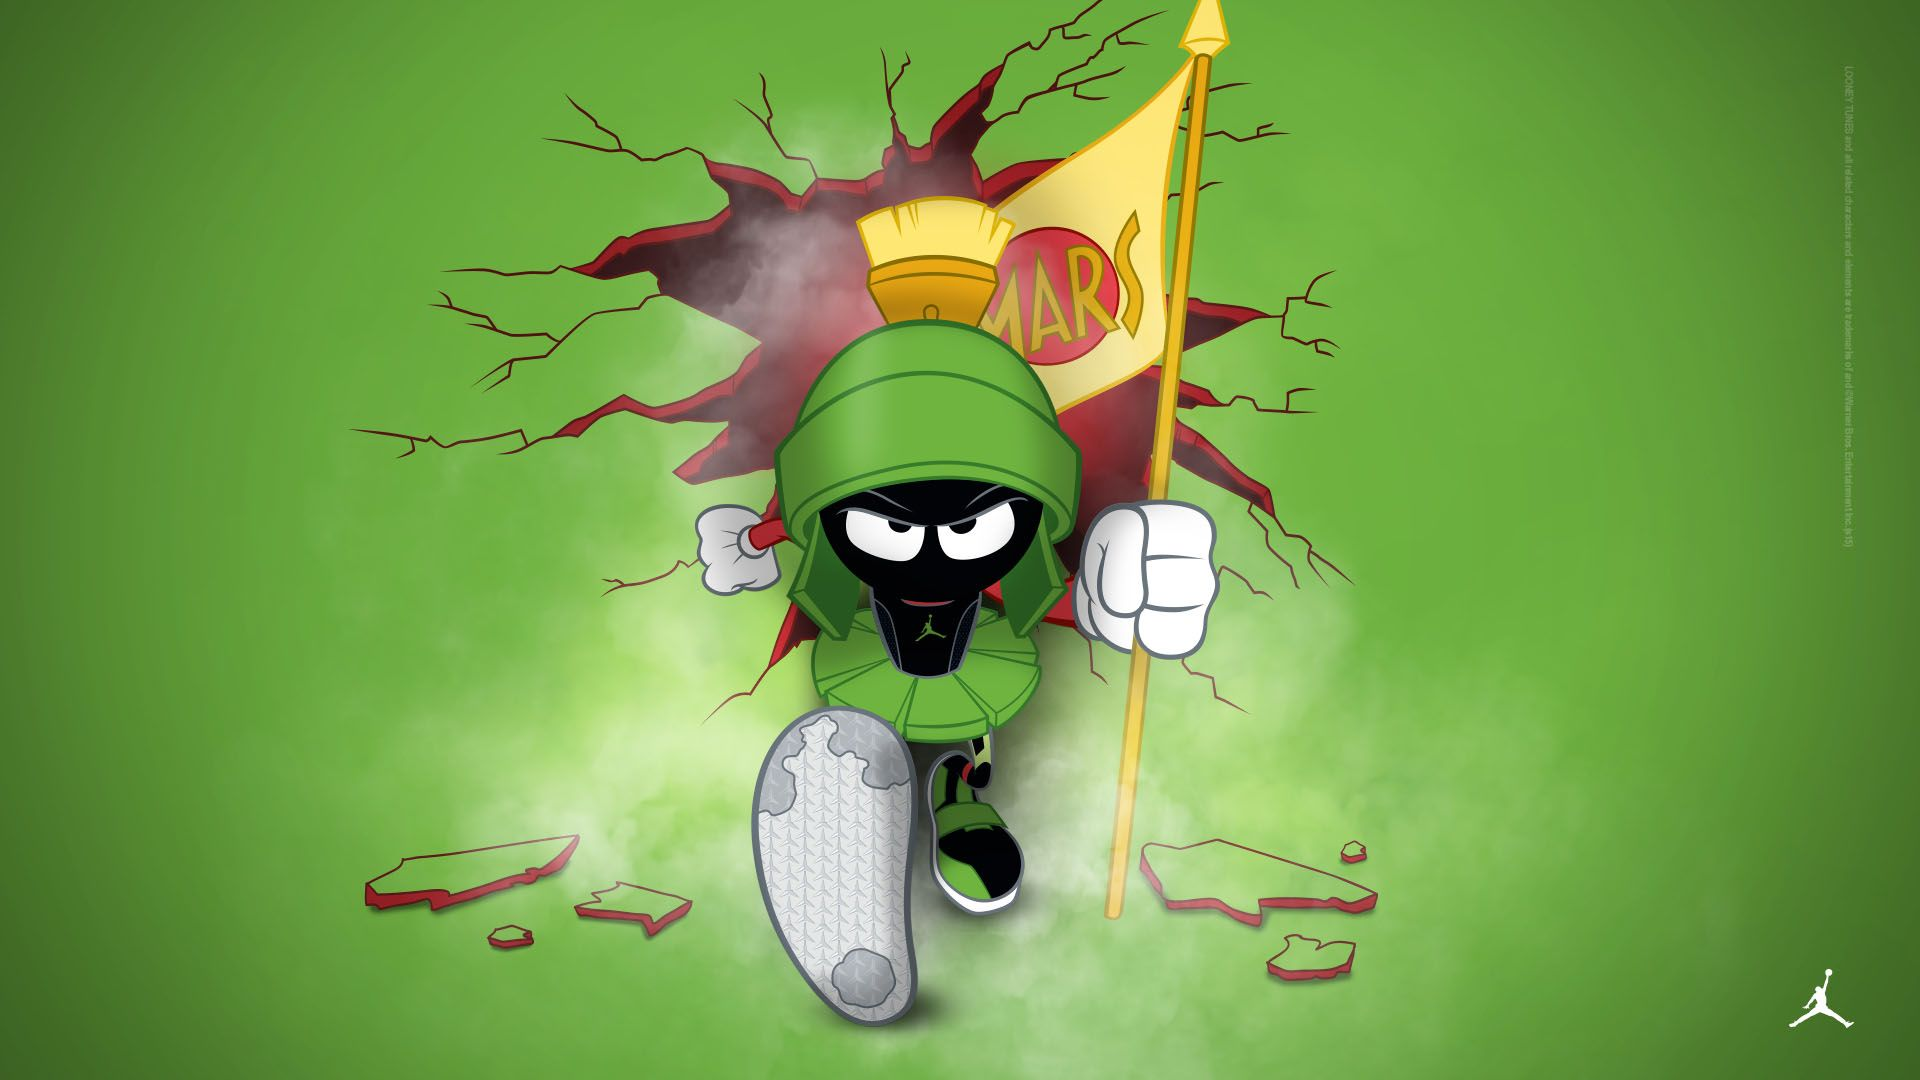 marvin the martian playing cards google search marvin